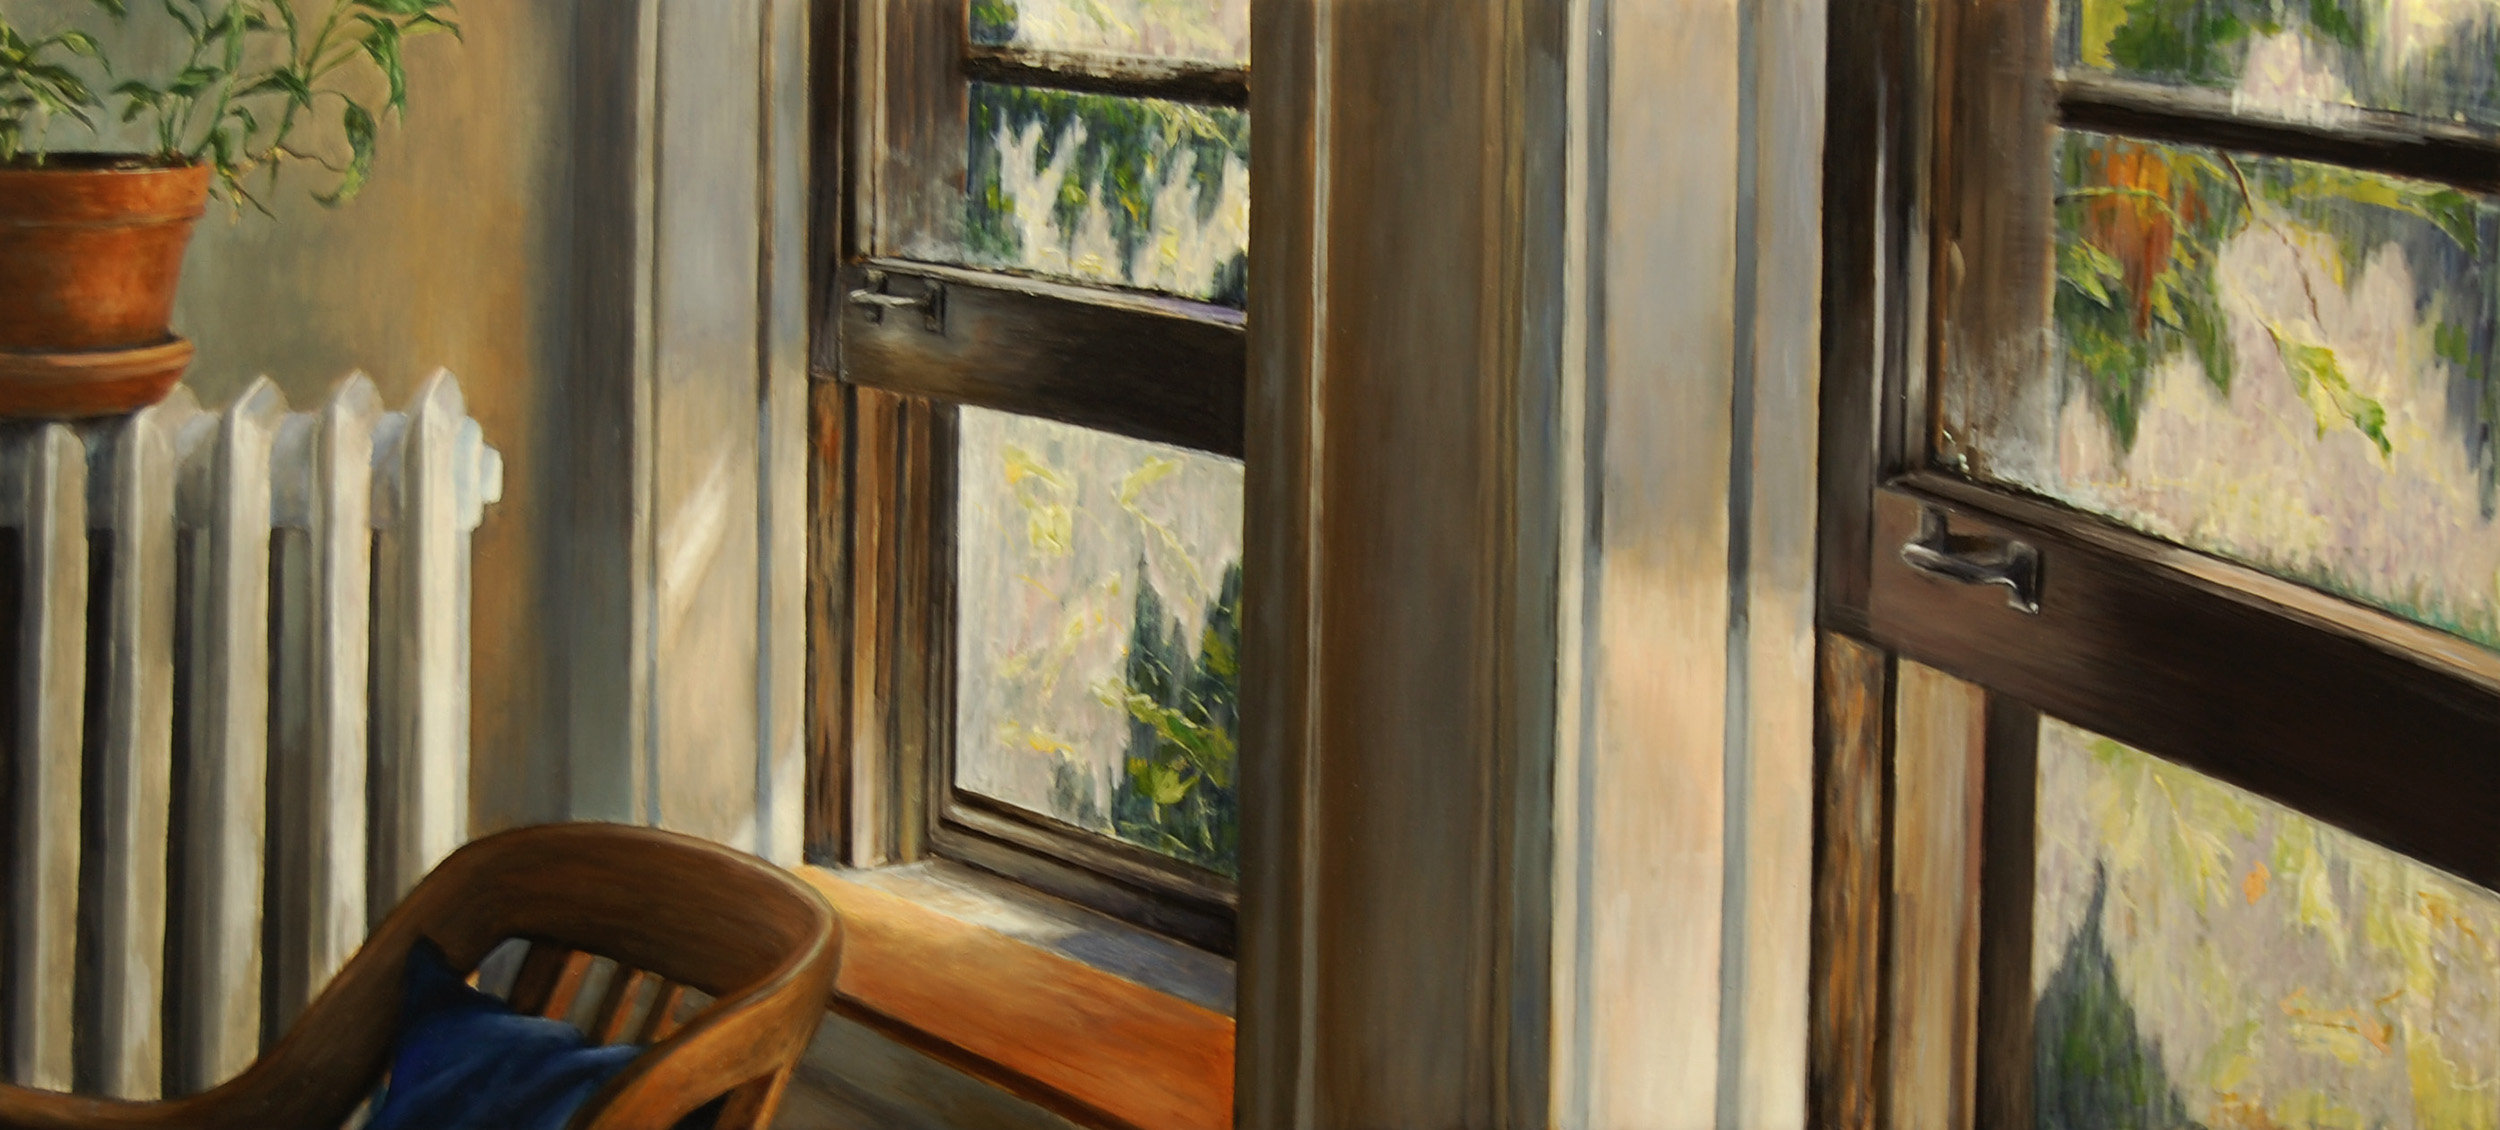 Early Afternoon Light   2011  Oil on canvas  15 x 32 inches